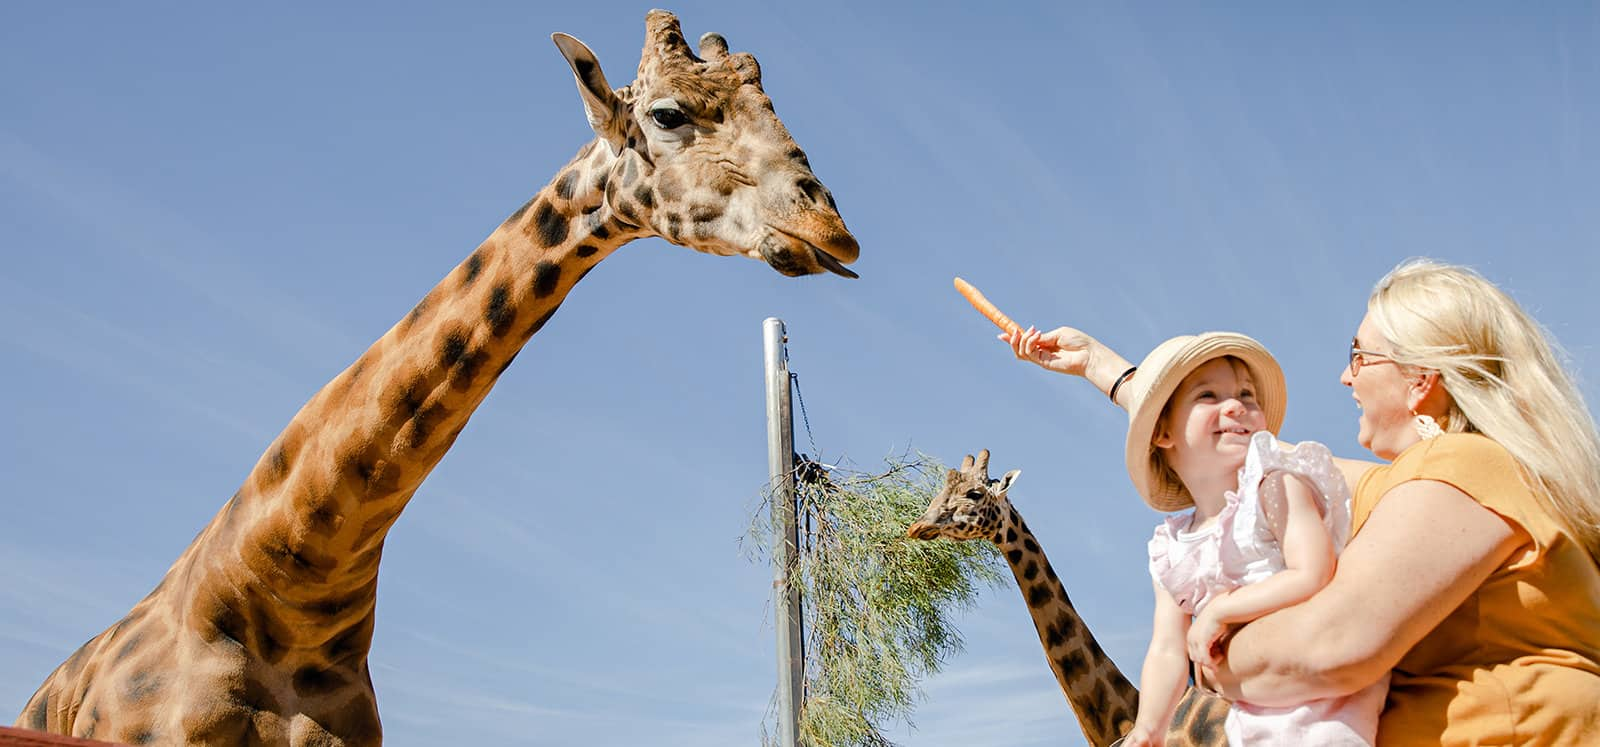 Giraffe being hand fed a carrot during Giraffe Safari